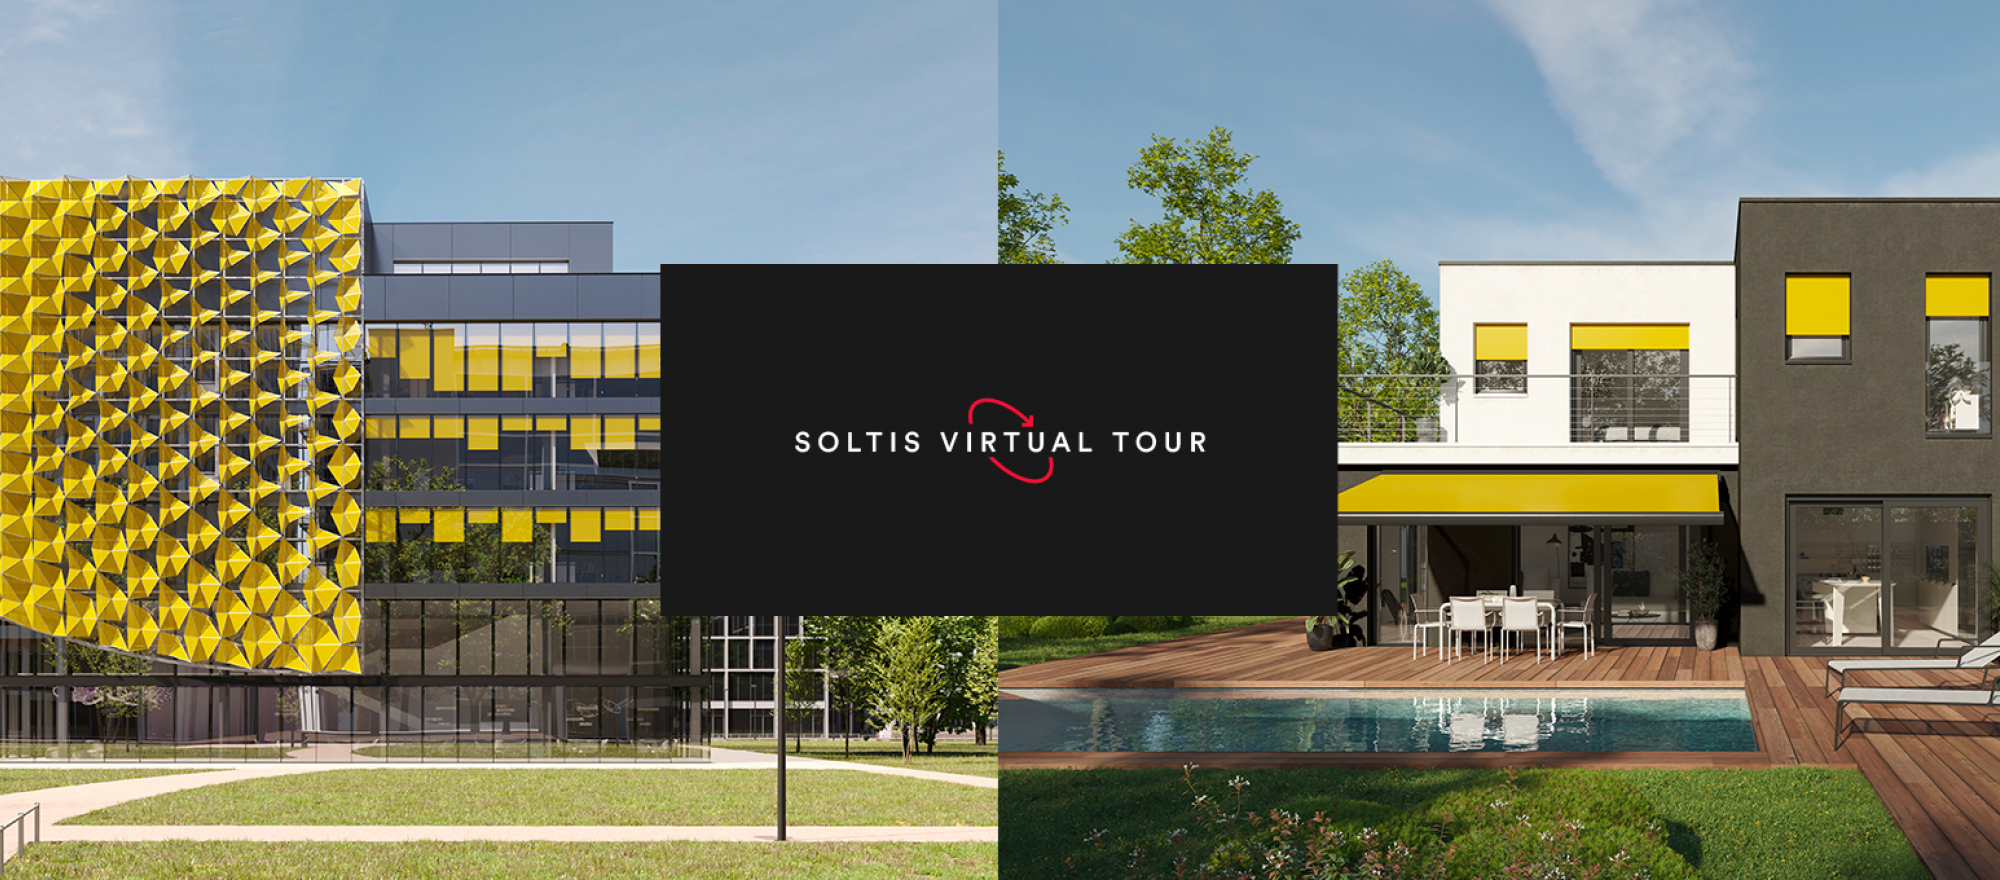 Soltis Virtual Tour